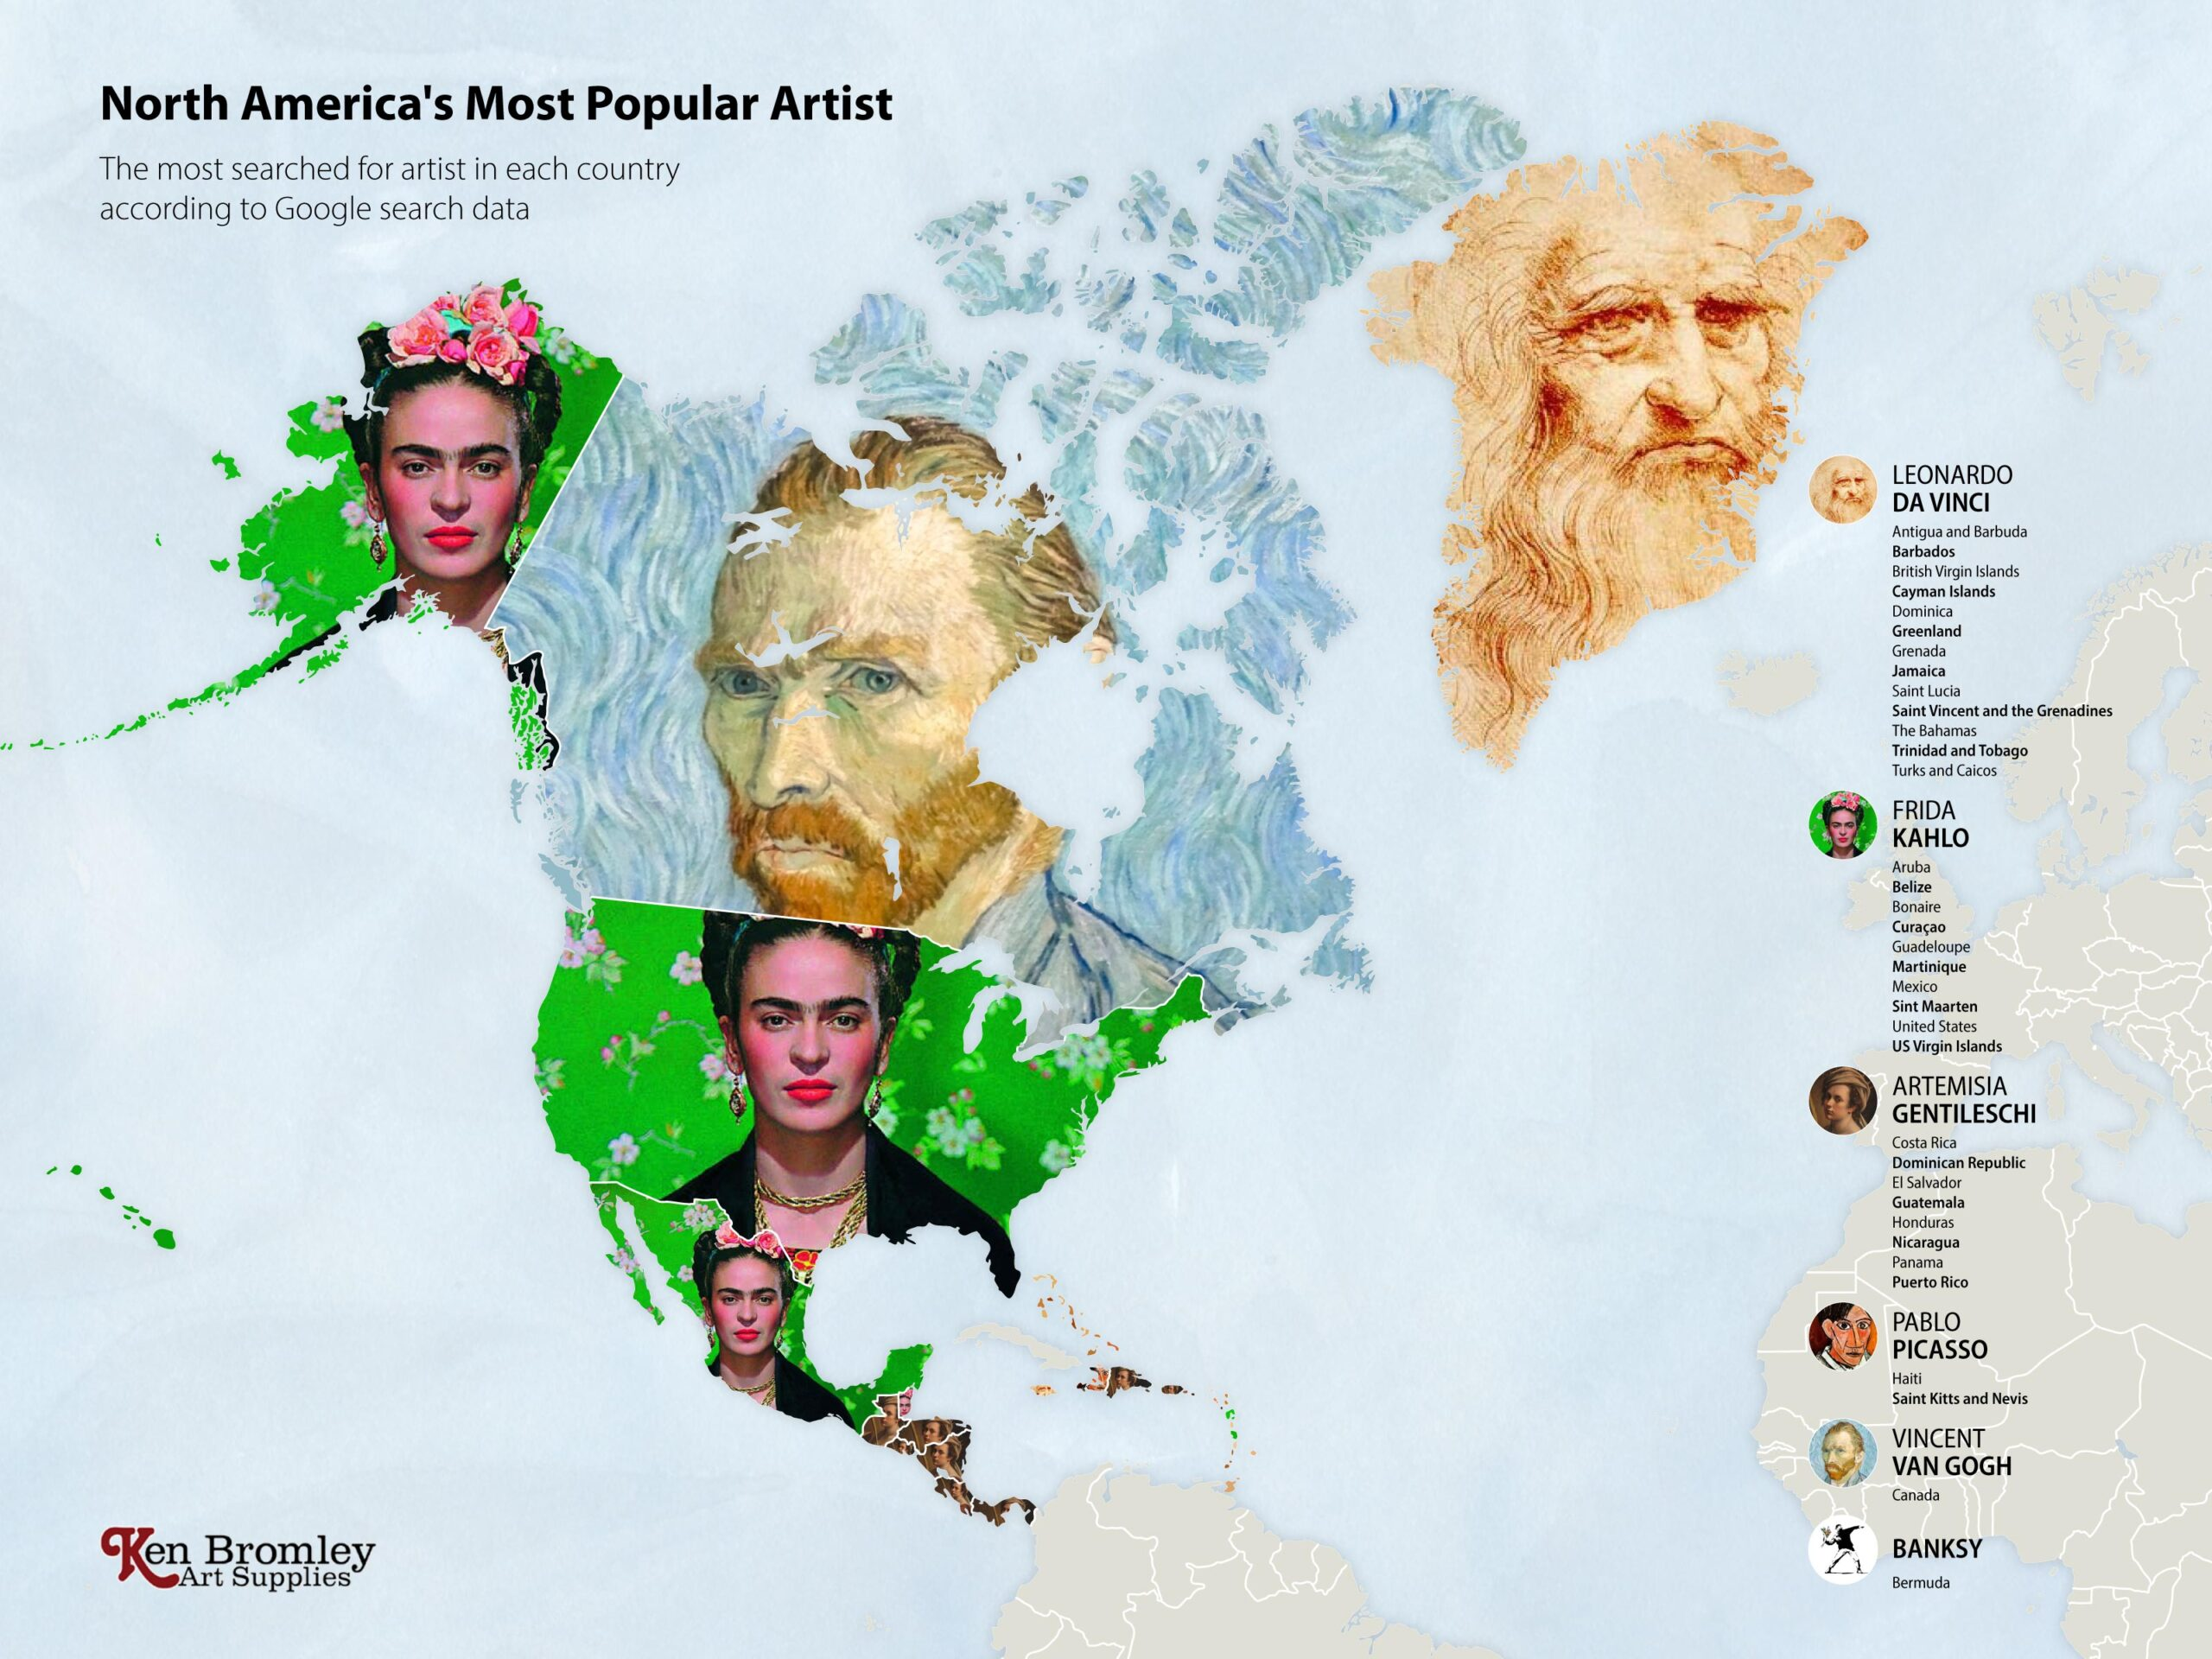 The most popular artists in North America